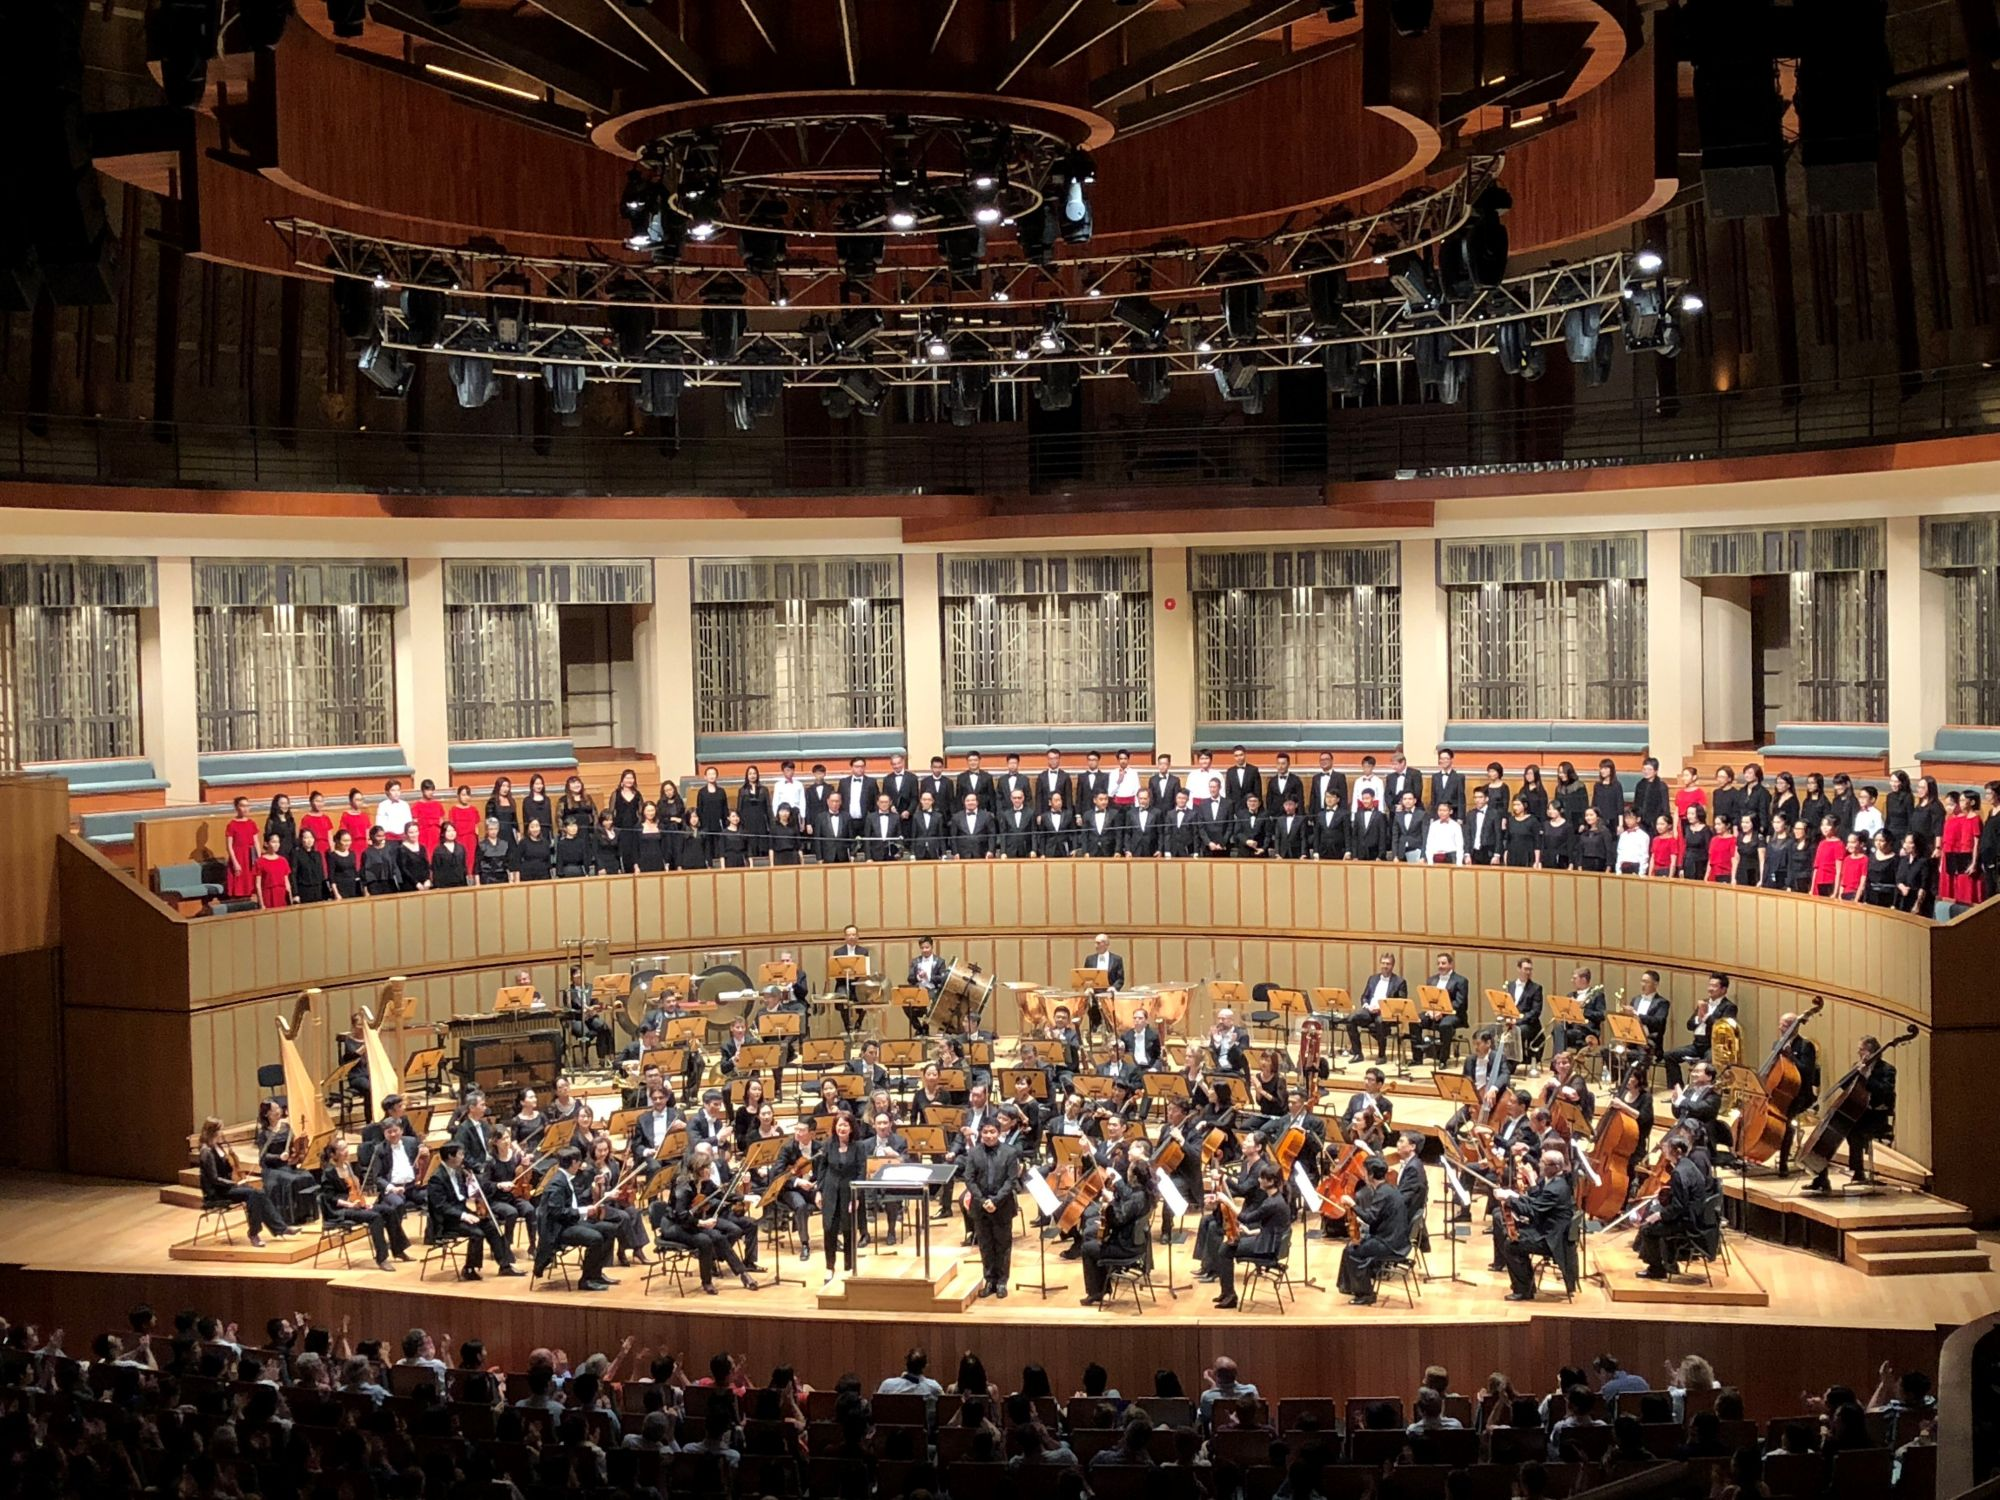 The Singapore Symphony Orchestra, performing alongside the Singapore Symphony Chorus, Singapore Symphony Youth Choir and Singapore Symphony Children's Choir